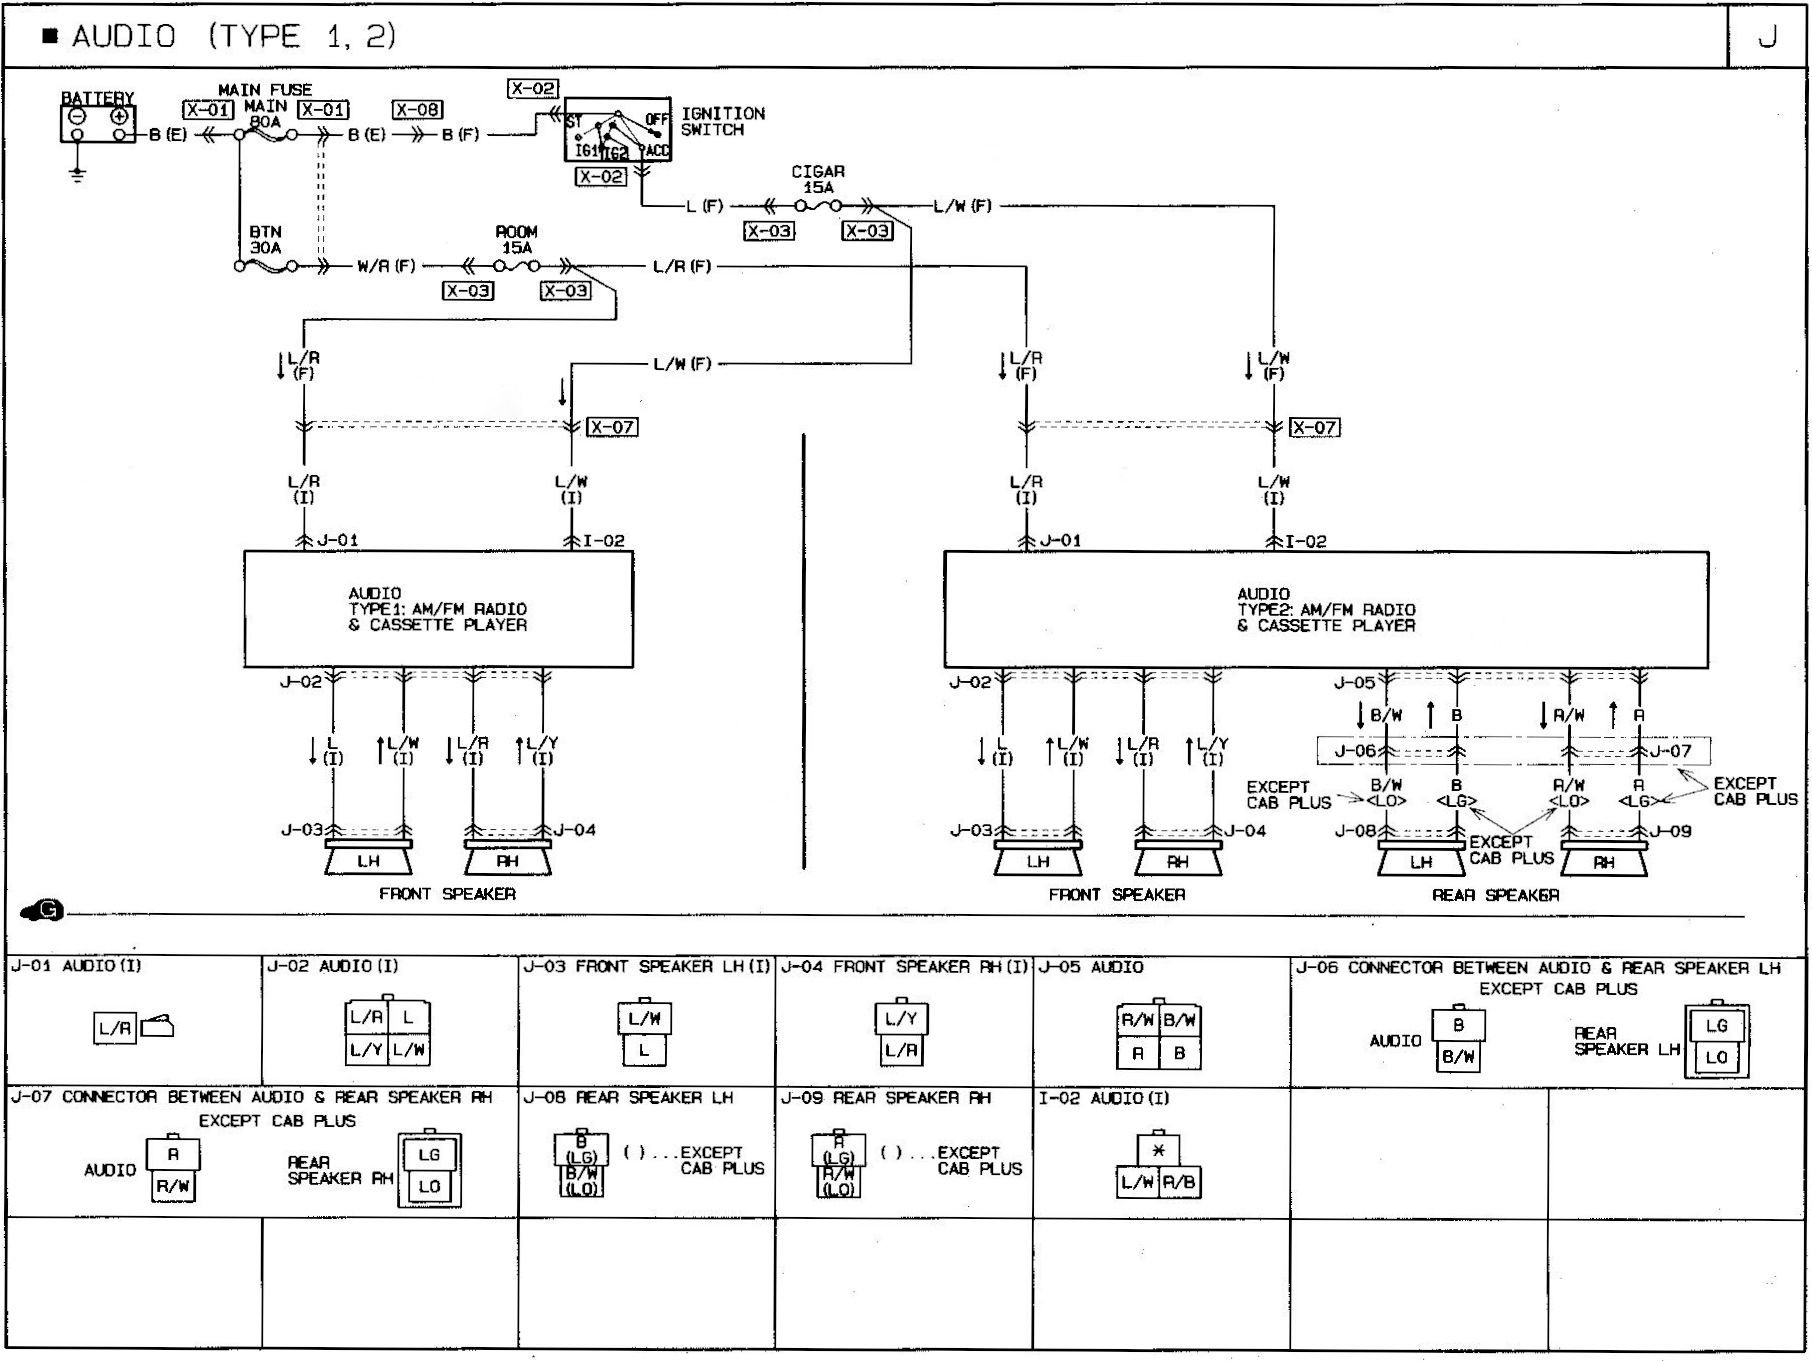 2010 Mazda 3 Engine Wiring Diagram] 2006 Mazda 6 Stereo Wiring Diagram Full Version Hd Of 2010 Mazda 3 Engine Wiring